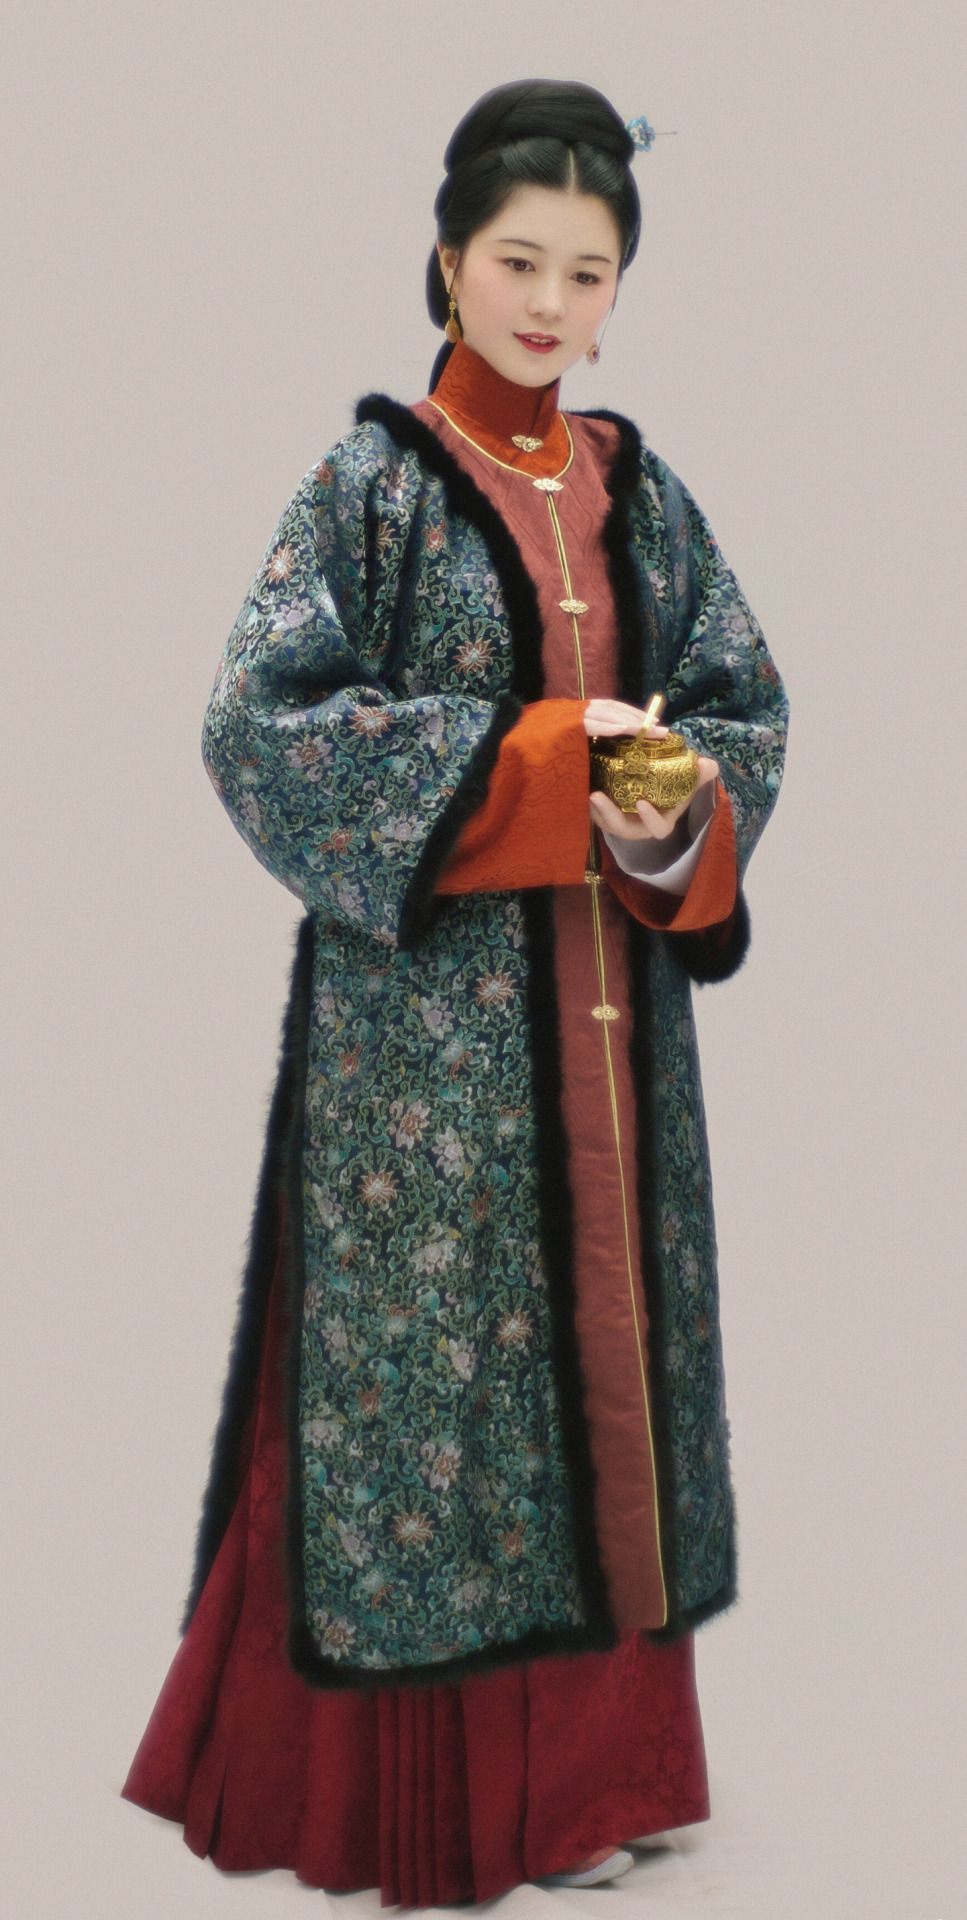 "changan-moon: ""Traditional Chinese hanfu in Ming dynasty style ..."